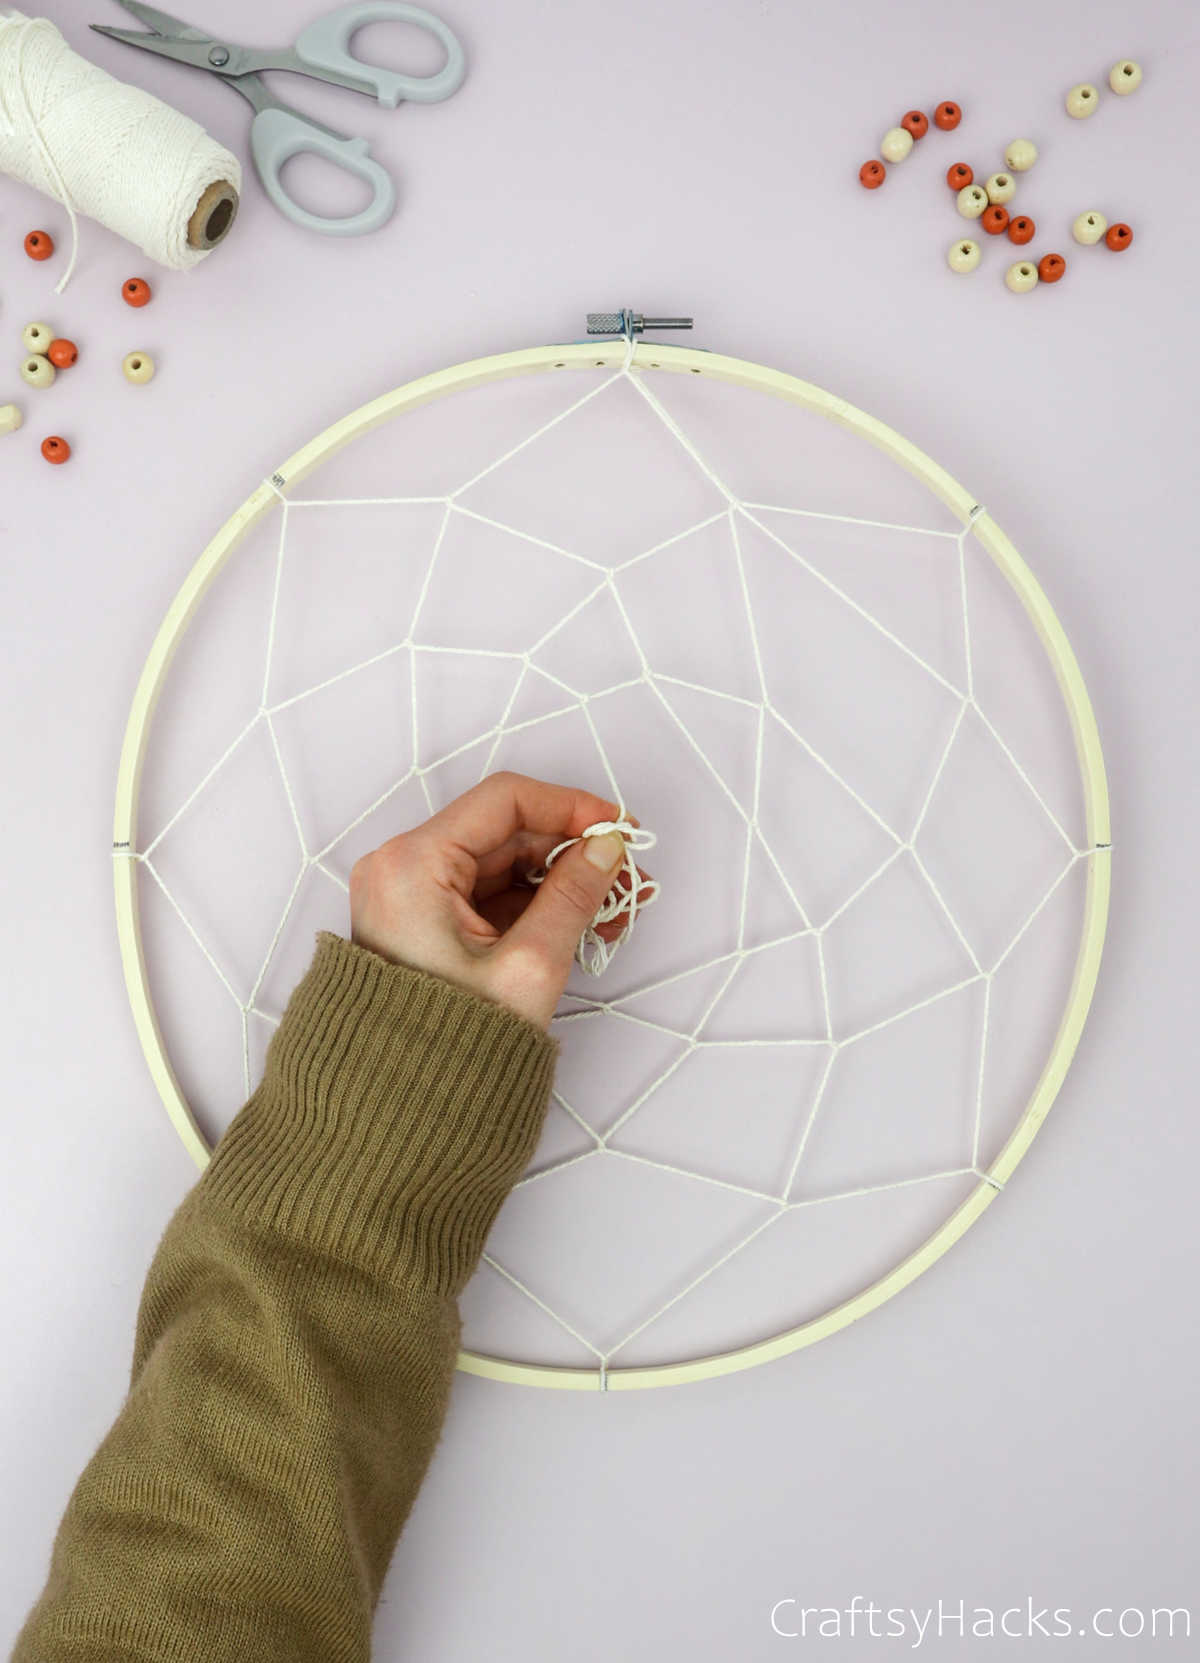 adding more layers of string